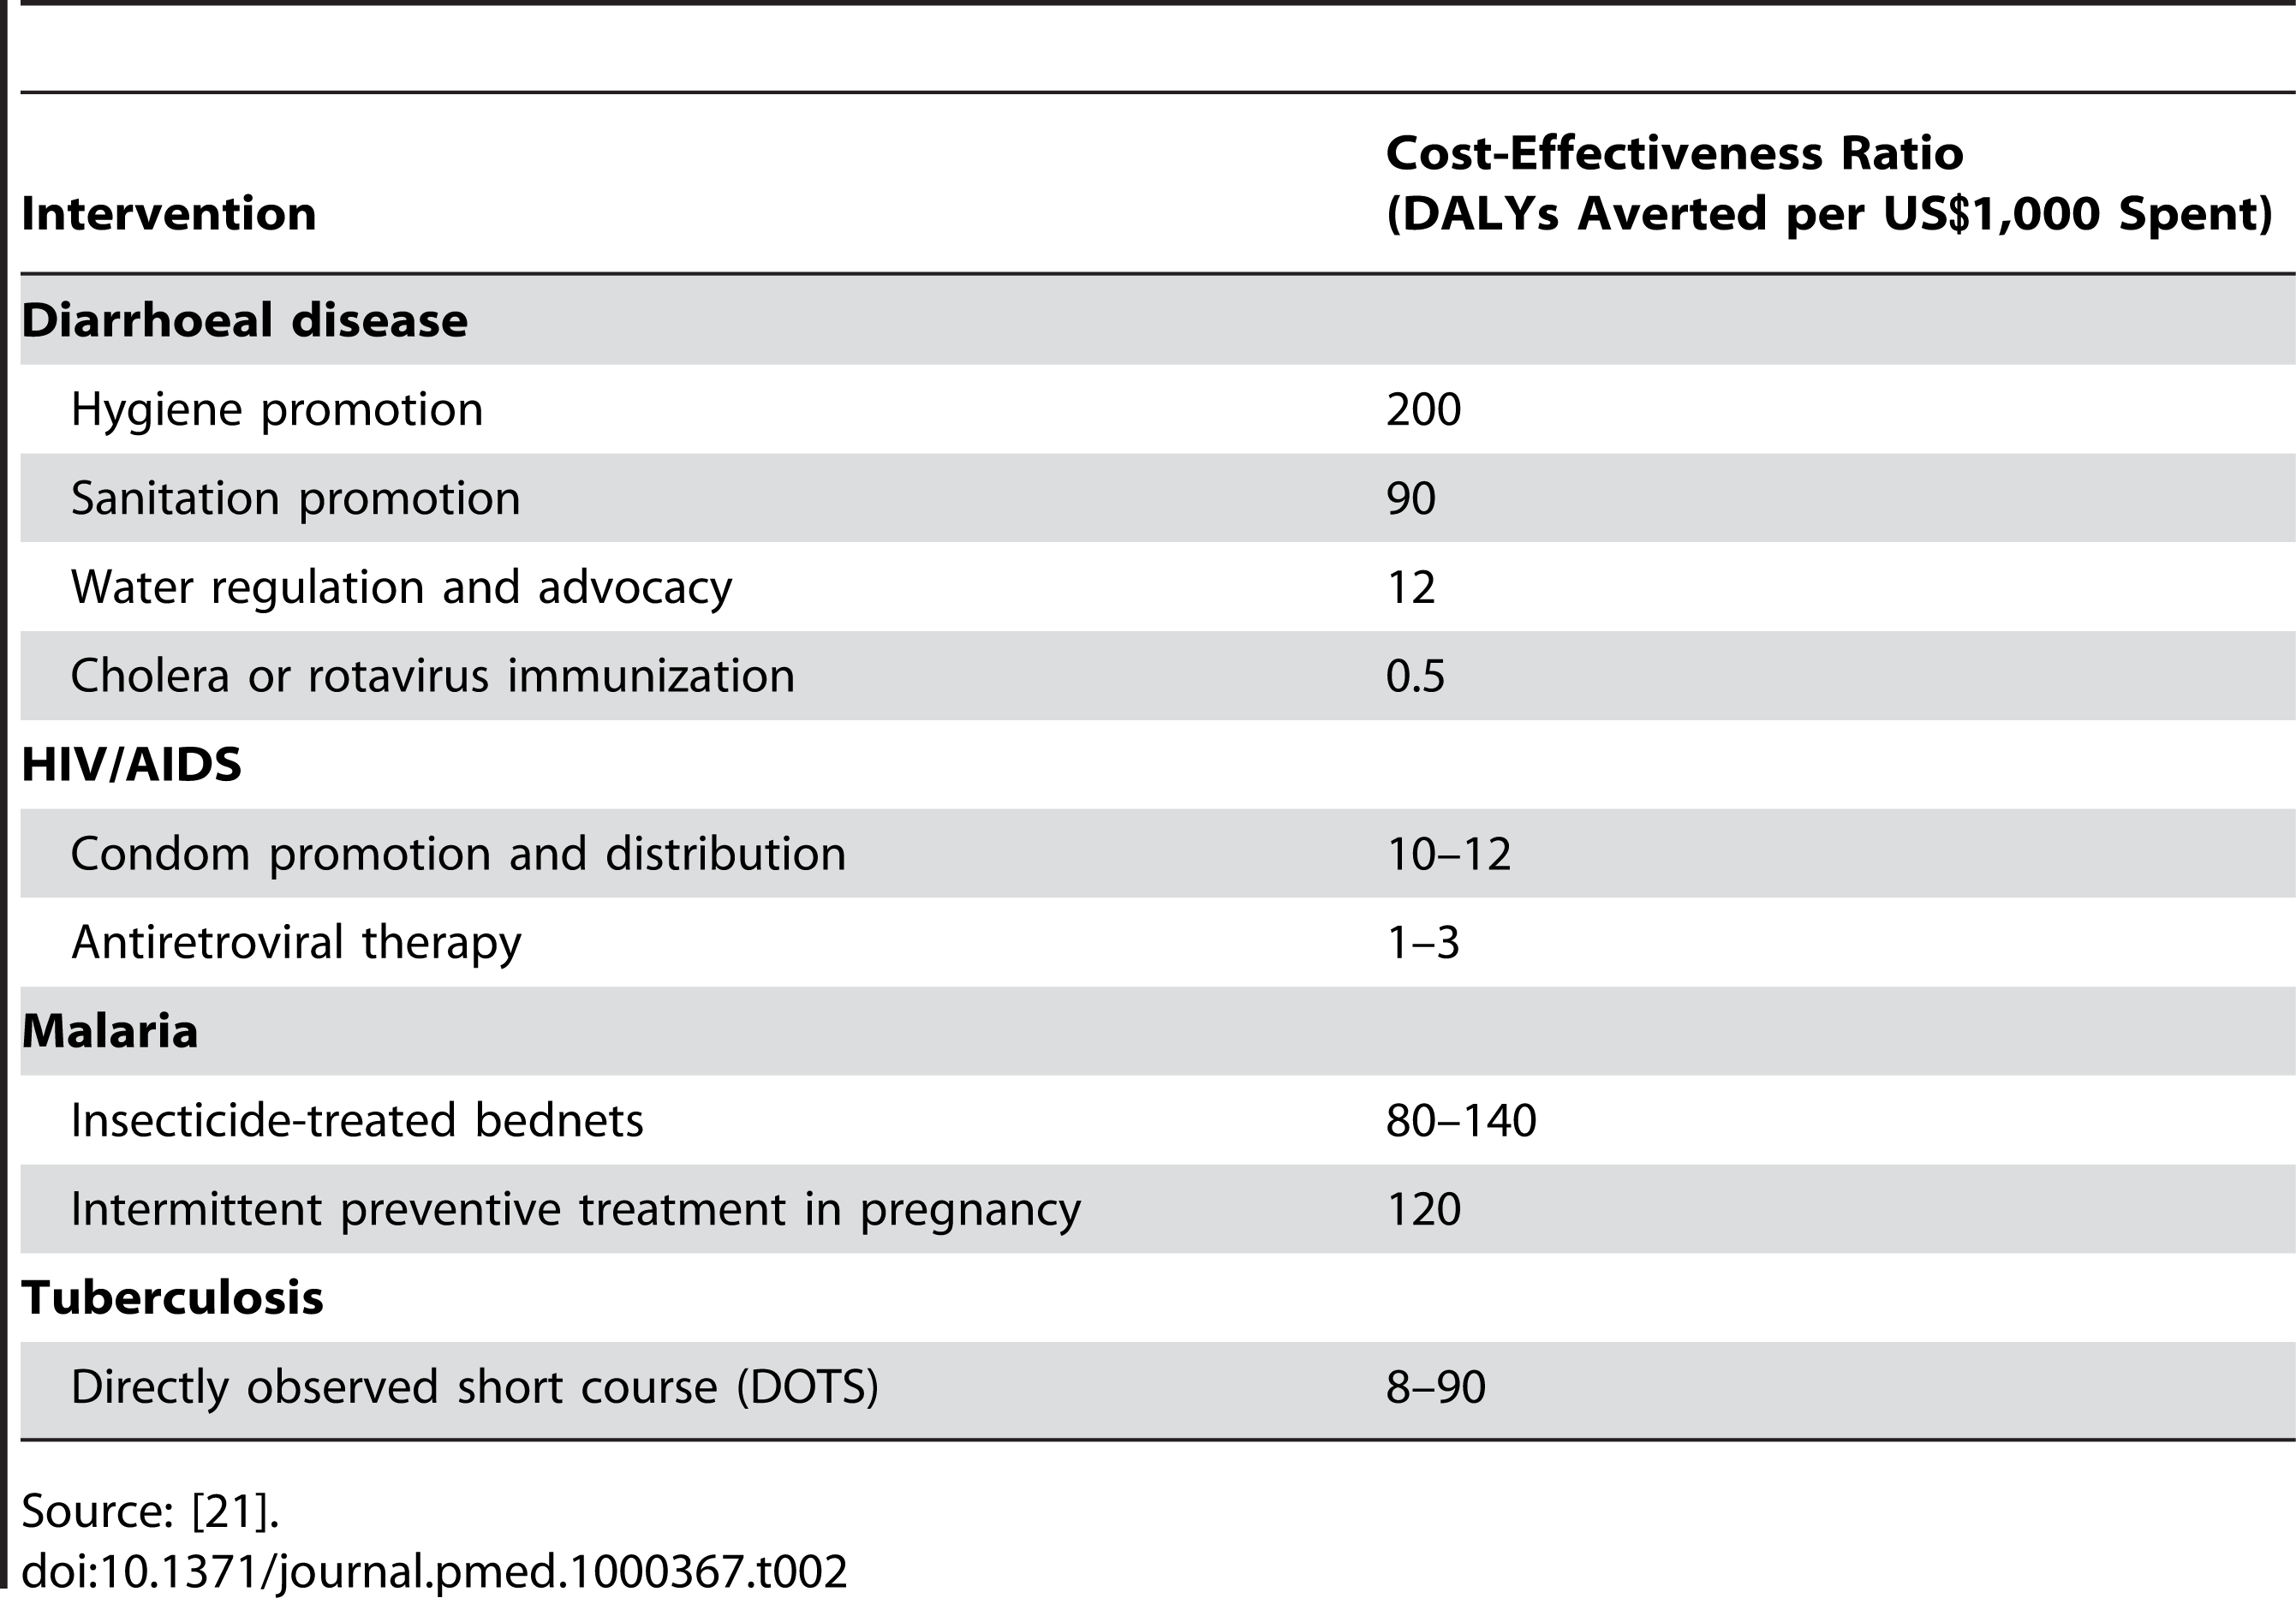 Cost-effectiveness of HSW compared with other public health interventions.